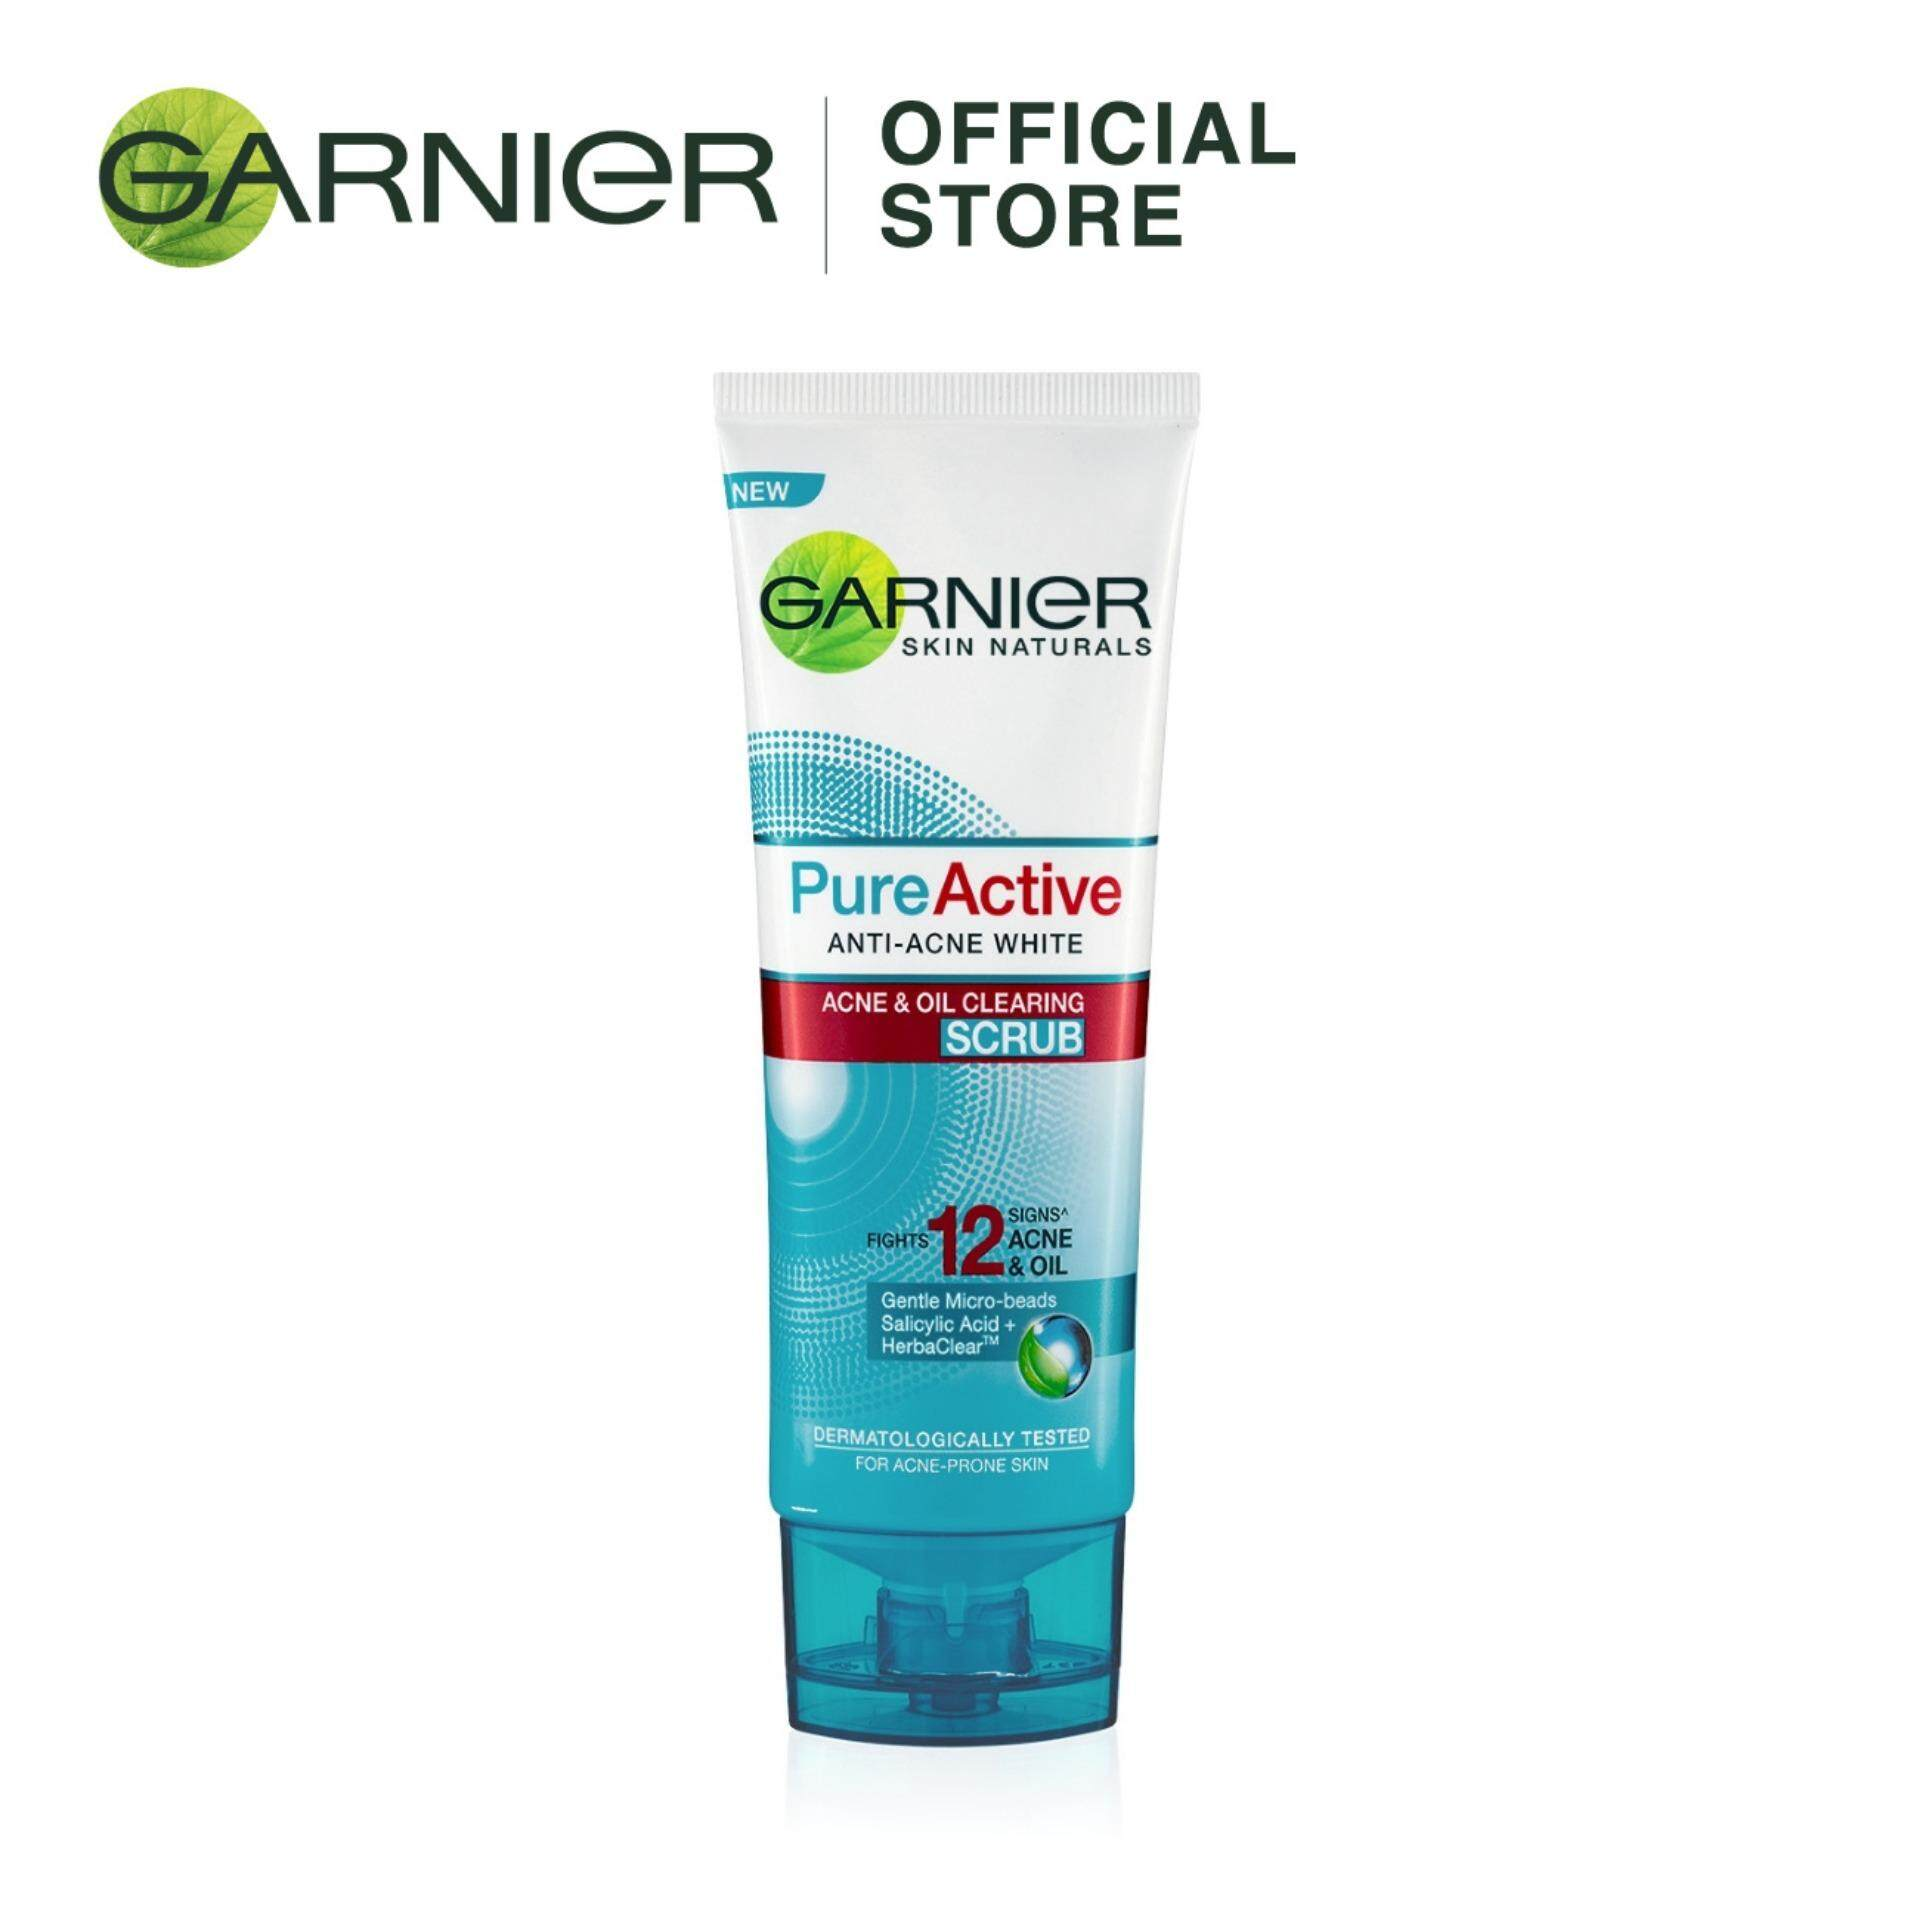 Garnier Pure Active Anti-Acne White Scrub 100ml